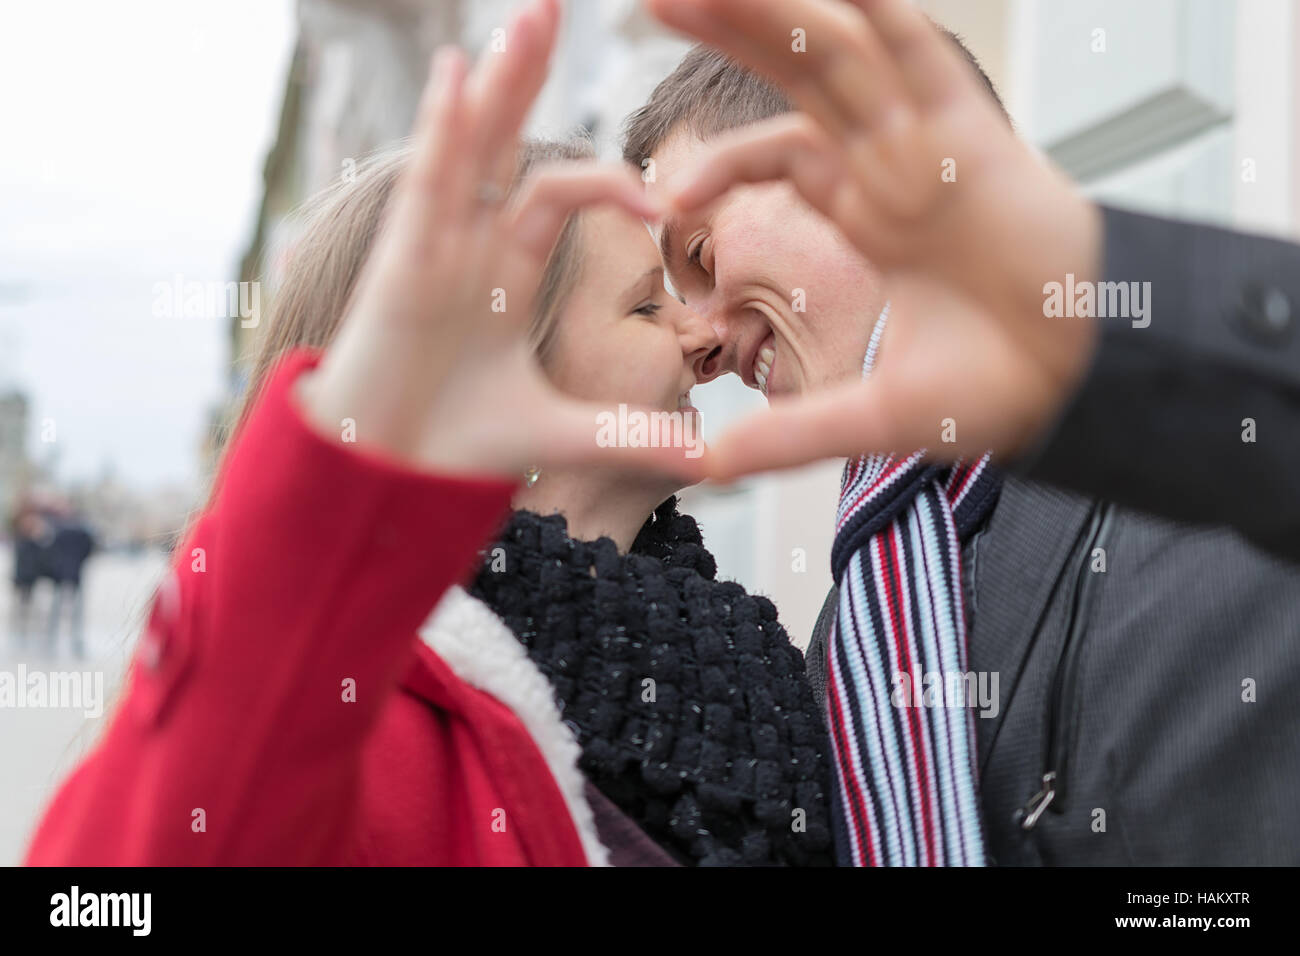 Heart In Hands Loving Couple Stock Photos & Heart In Hands Loving ...